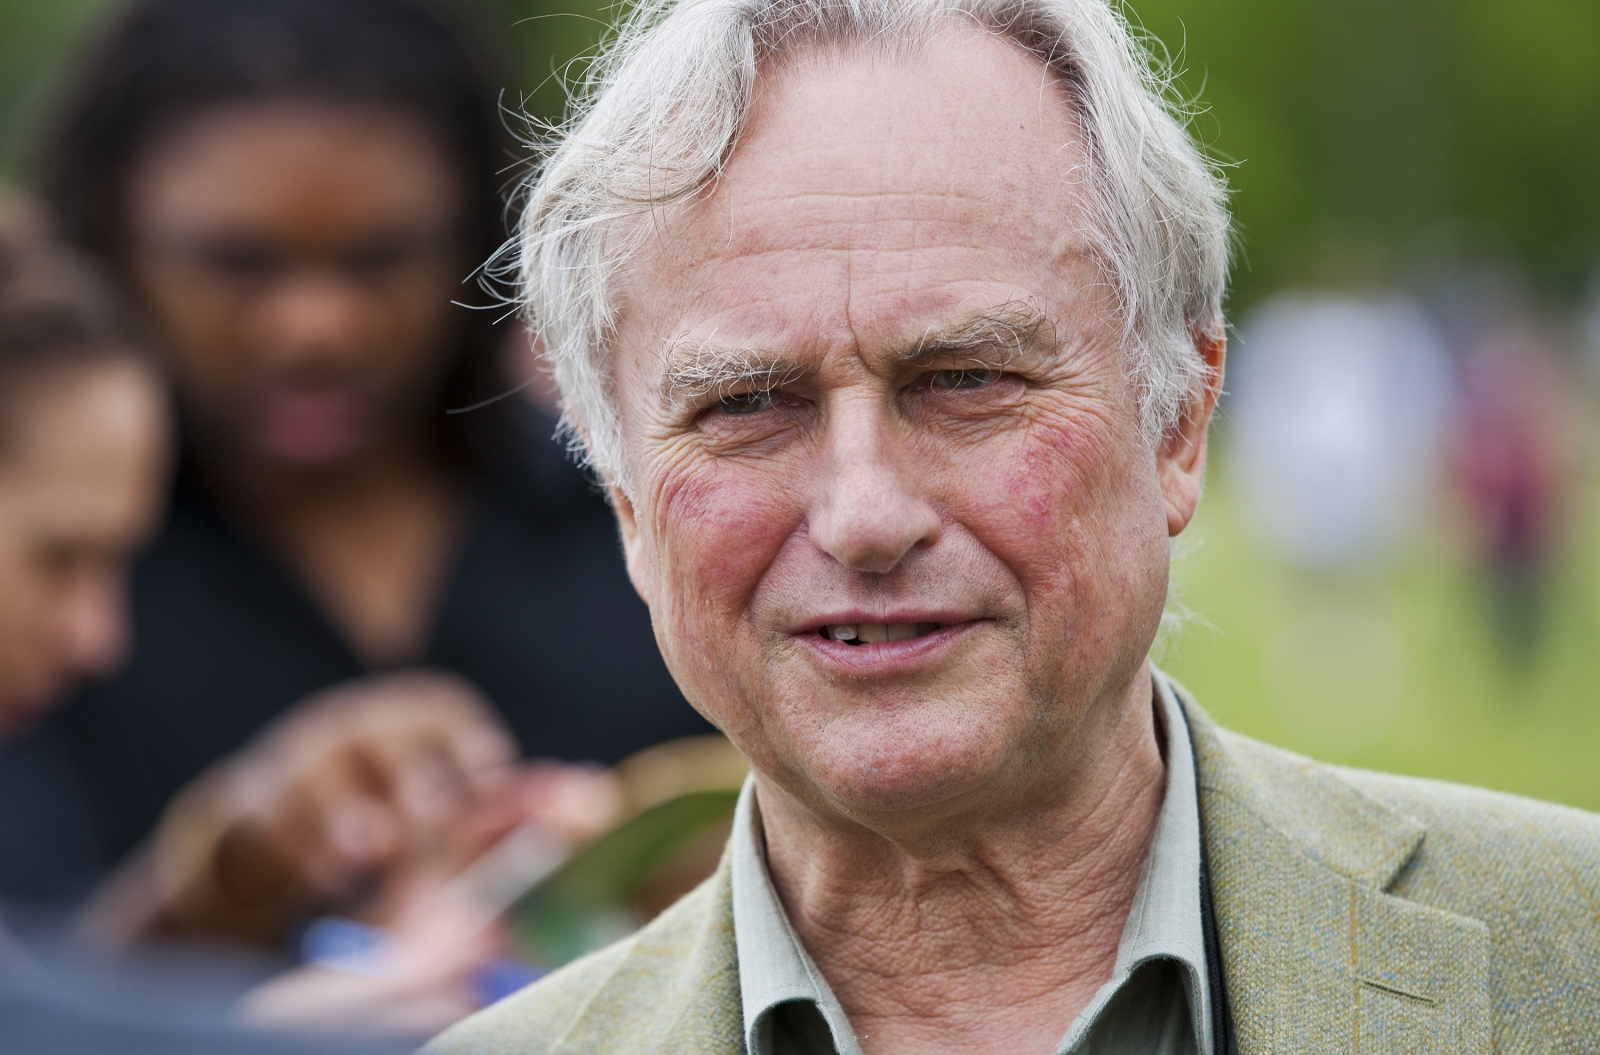 Scottish Independence: Richard Dawkins and Mick Jagger Amid 200 Public Figures Against Union Break